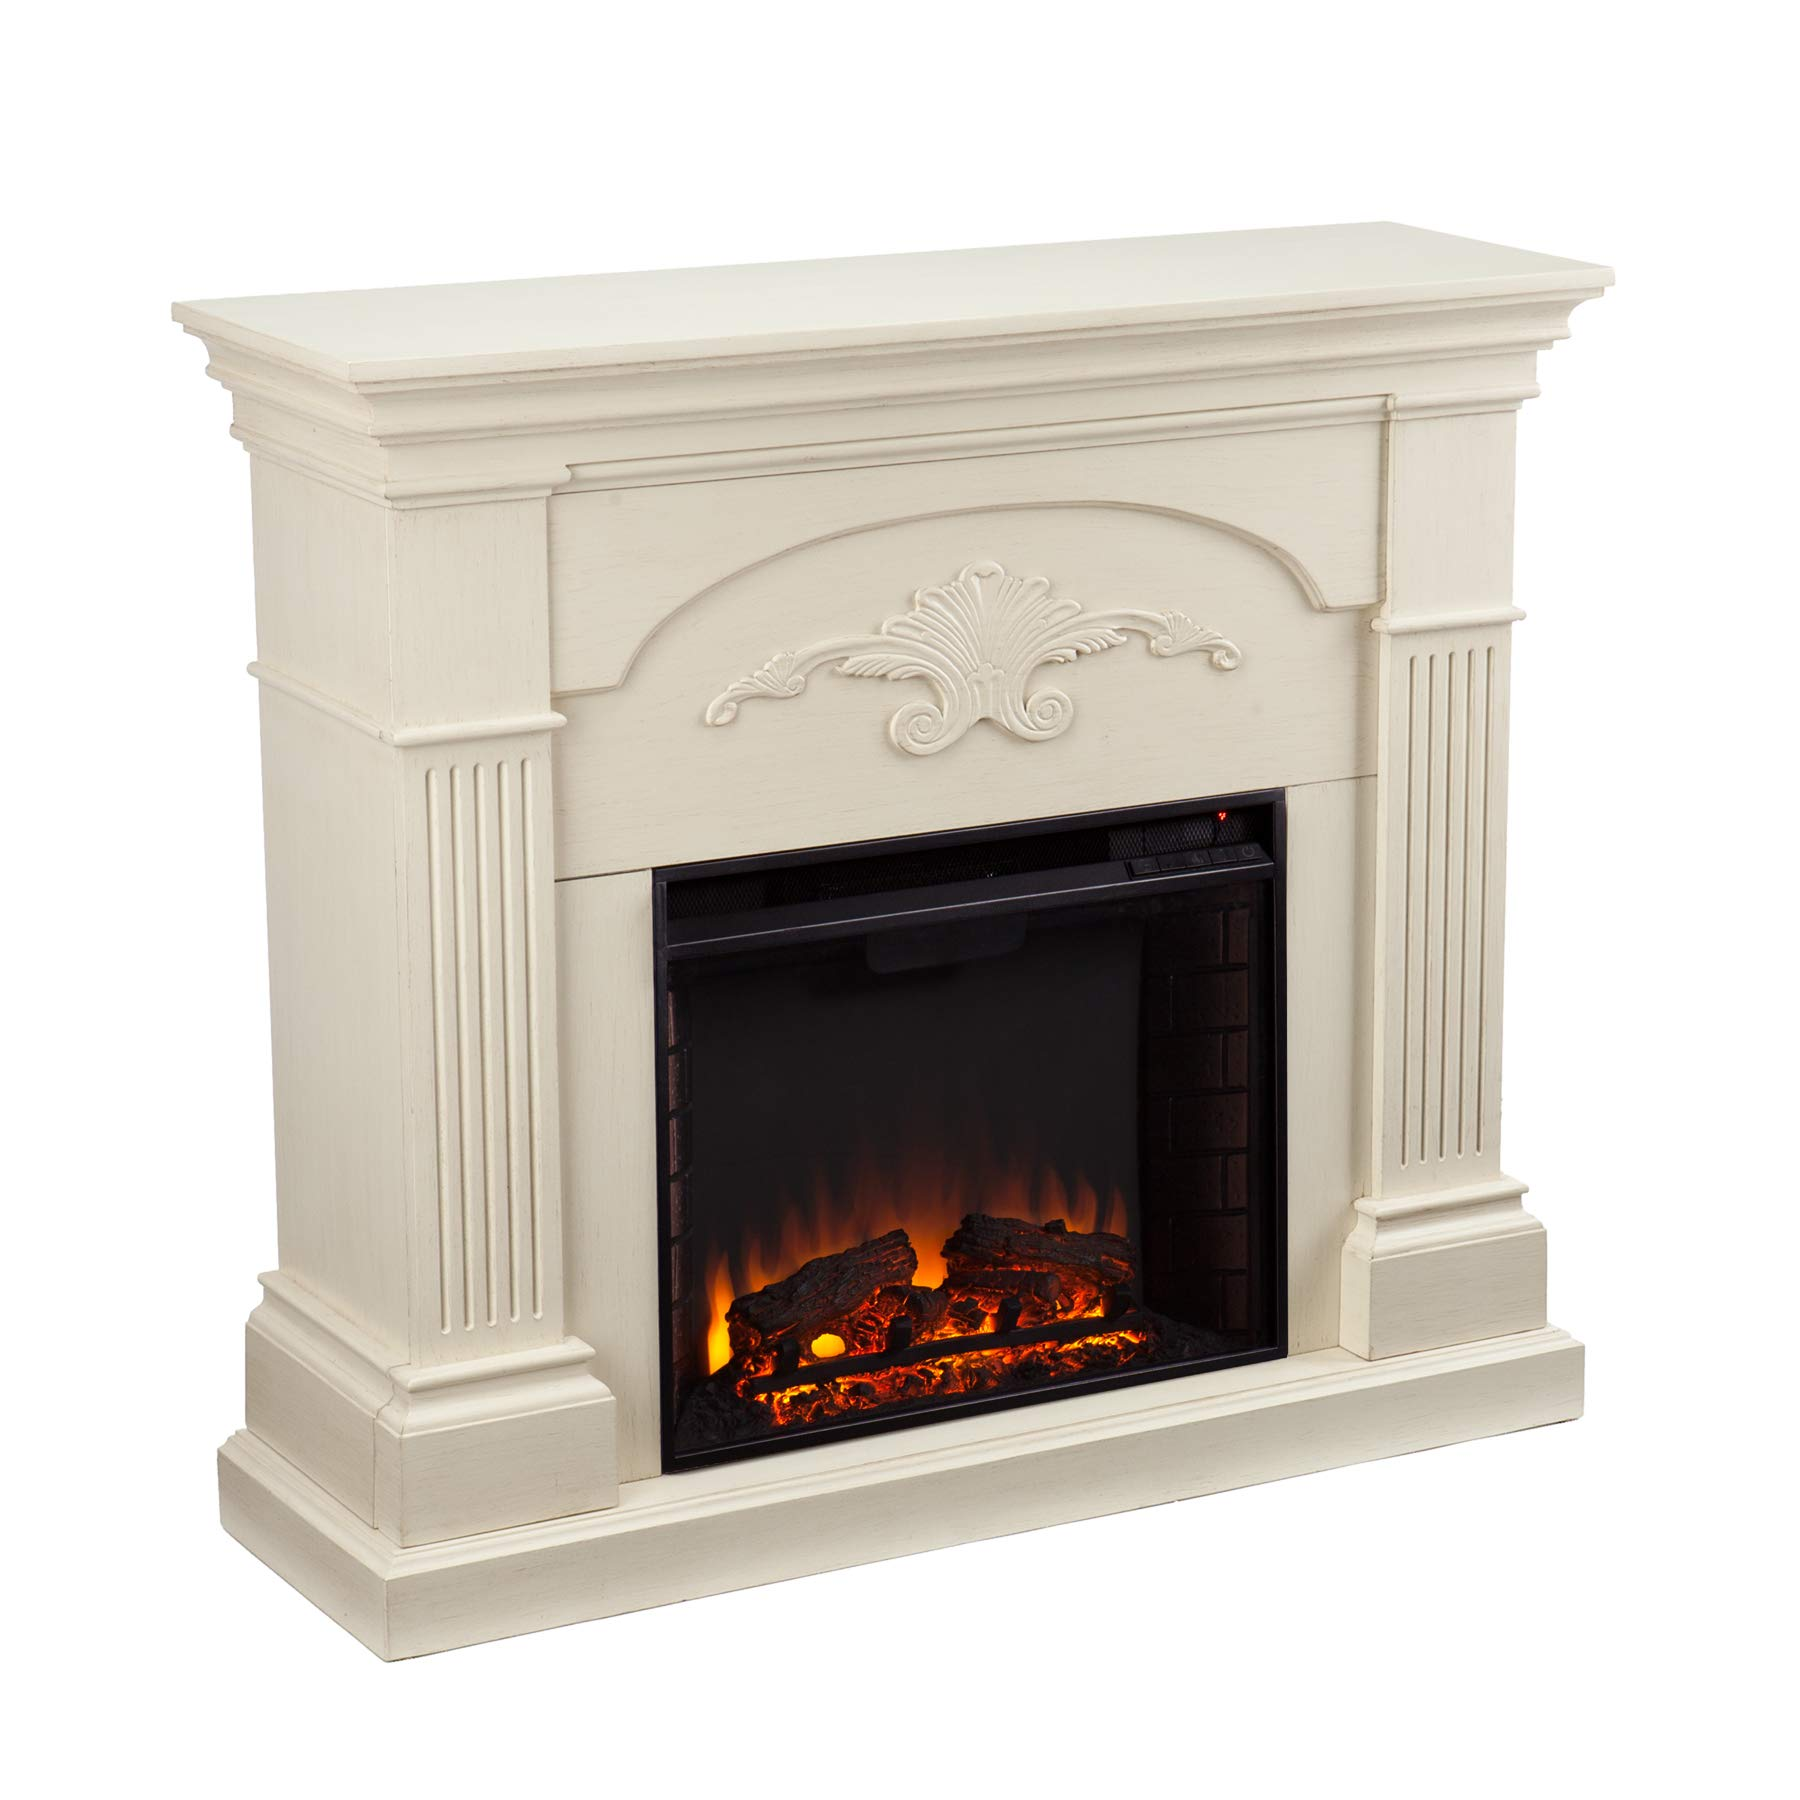 SEI Furniture Sicilian Harvest Traditional Style Electric Fireplace, Ivory